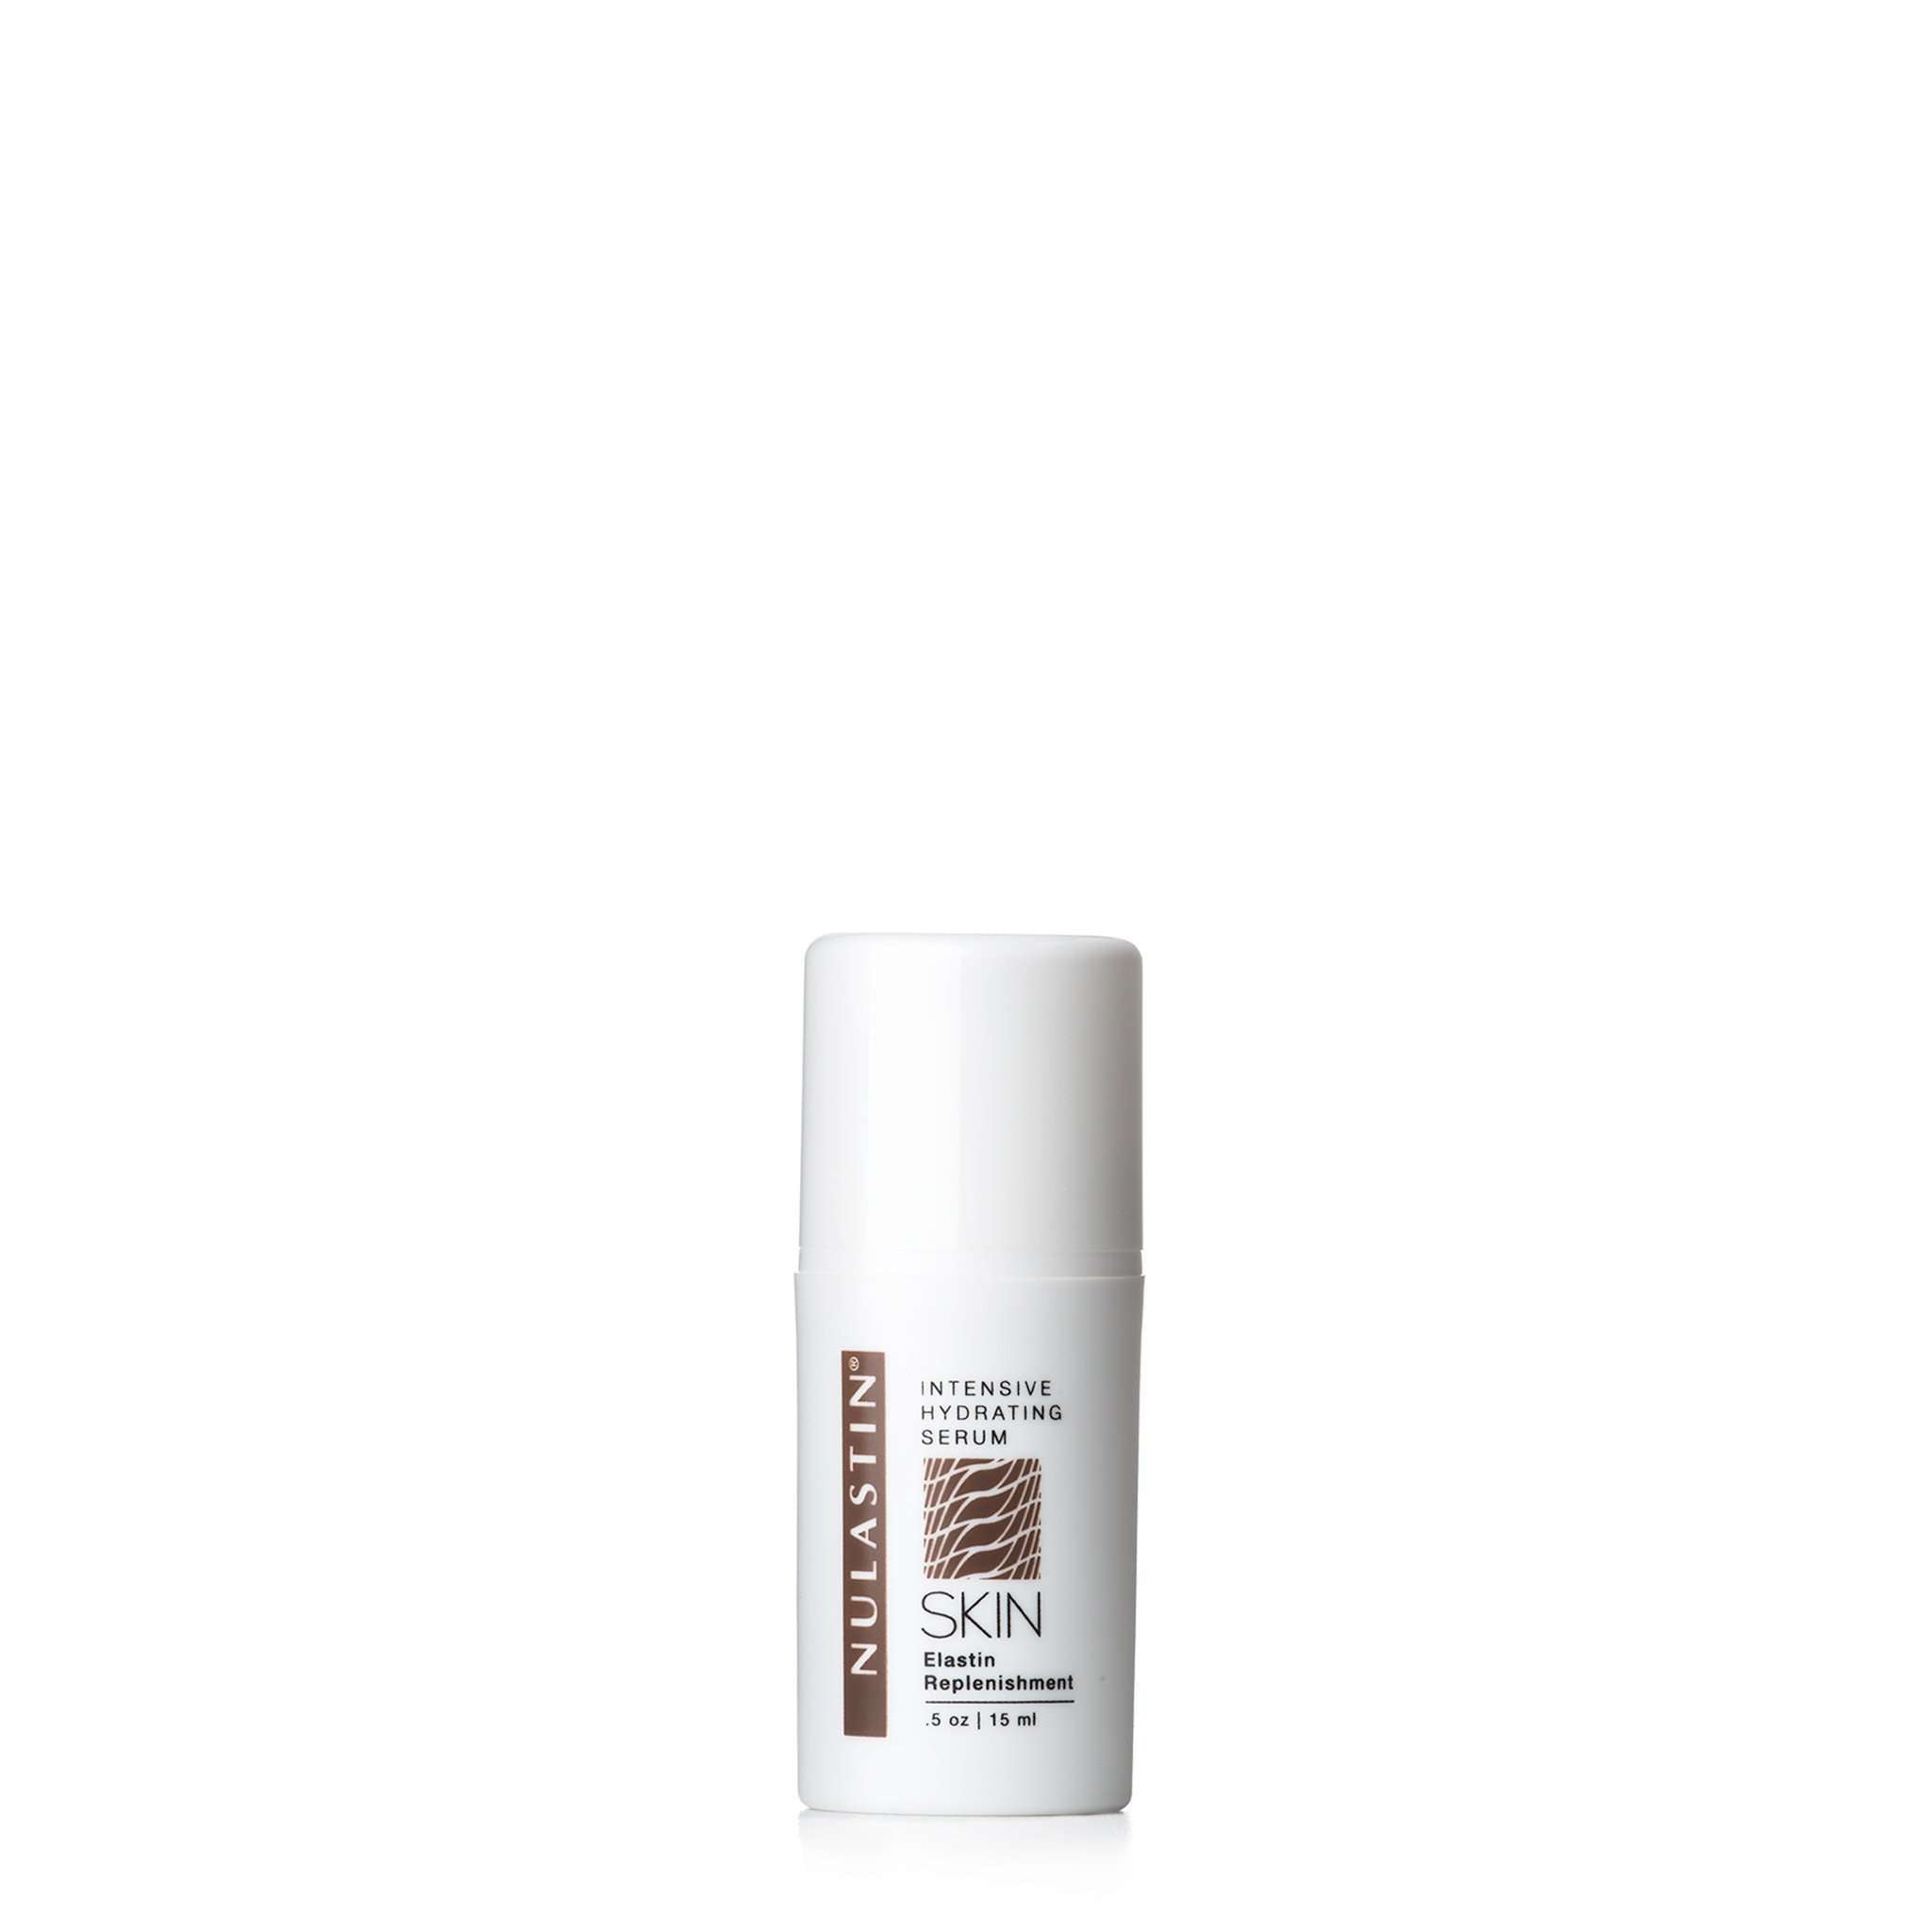 Backstock Hydrating SKIN Serum (60% OFF RETAIL)